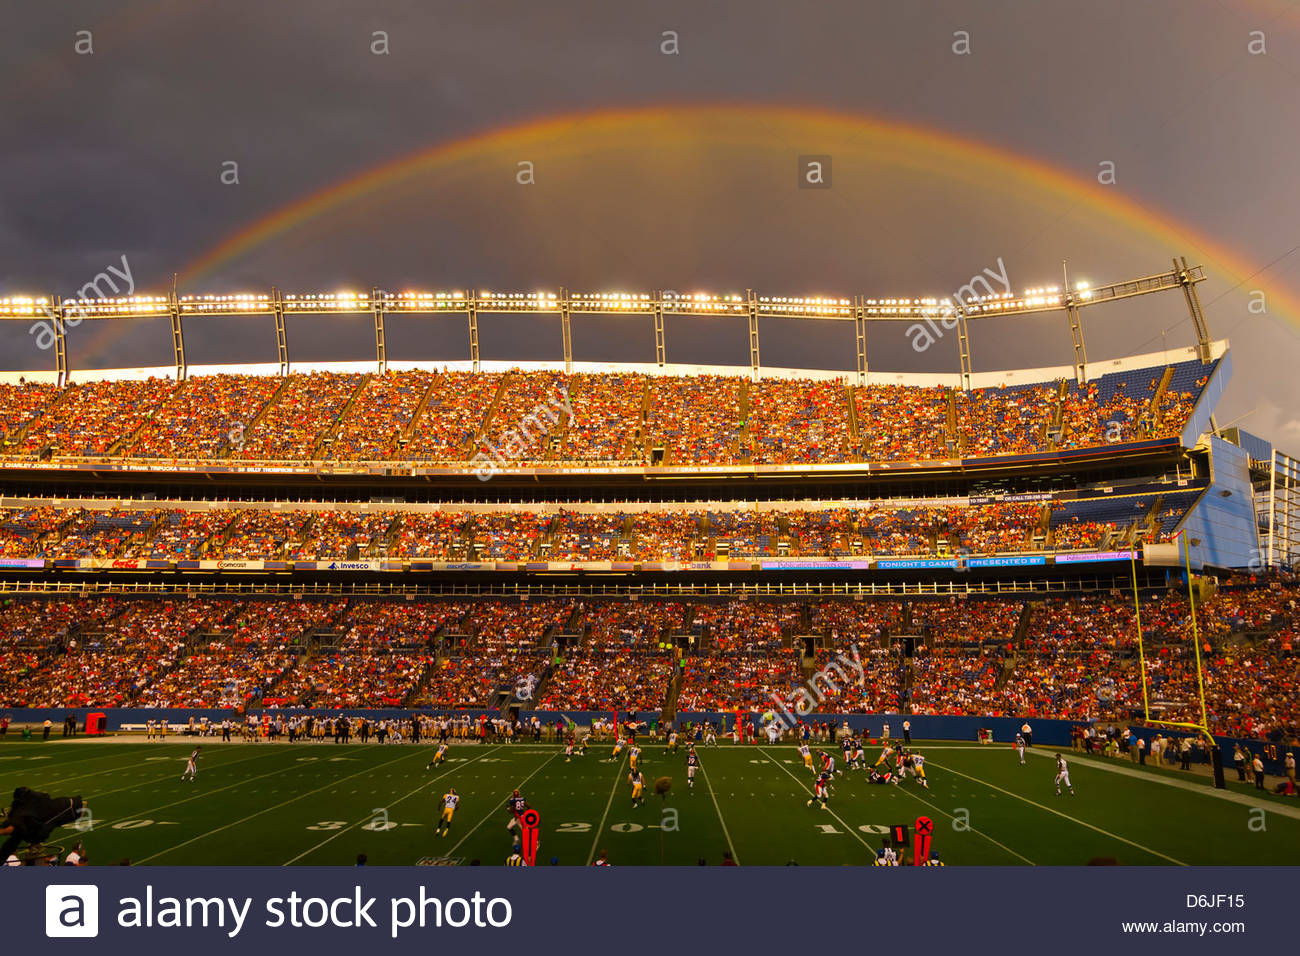 A rainbow over Sports Authority Field at Mile High (stadium), Denver, Colorado USA Stock Photo